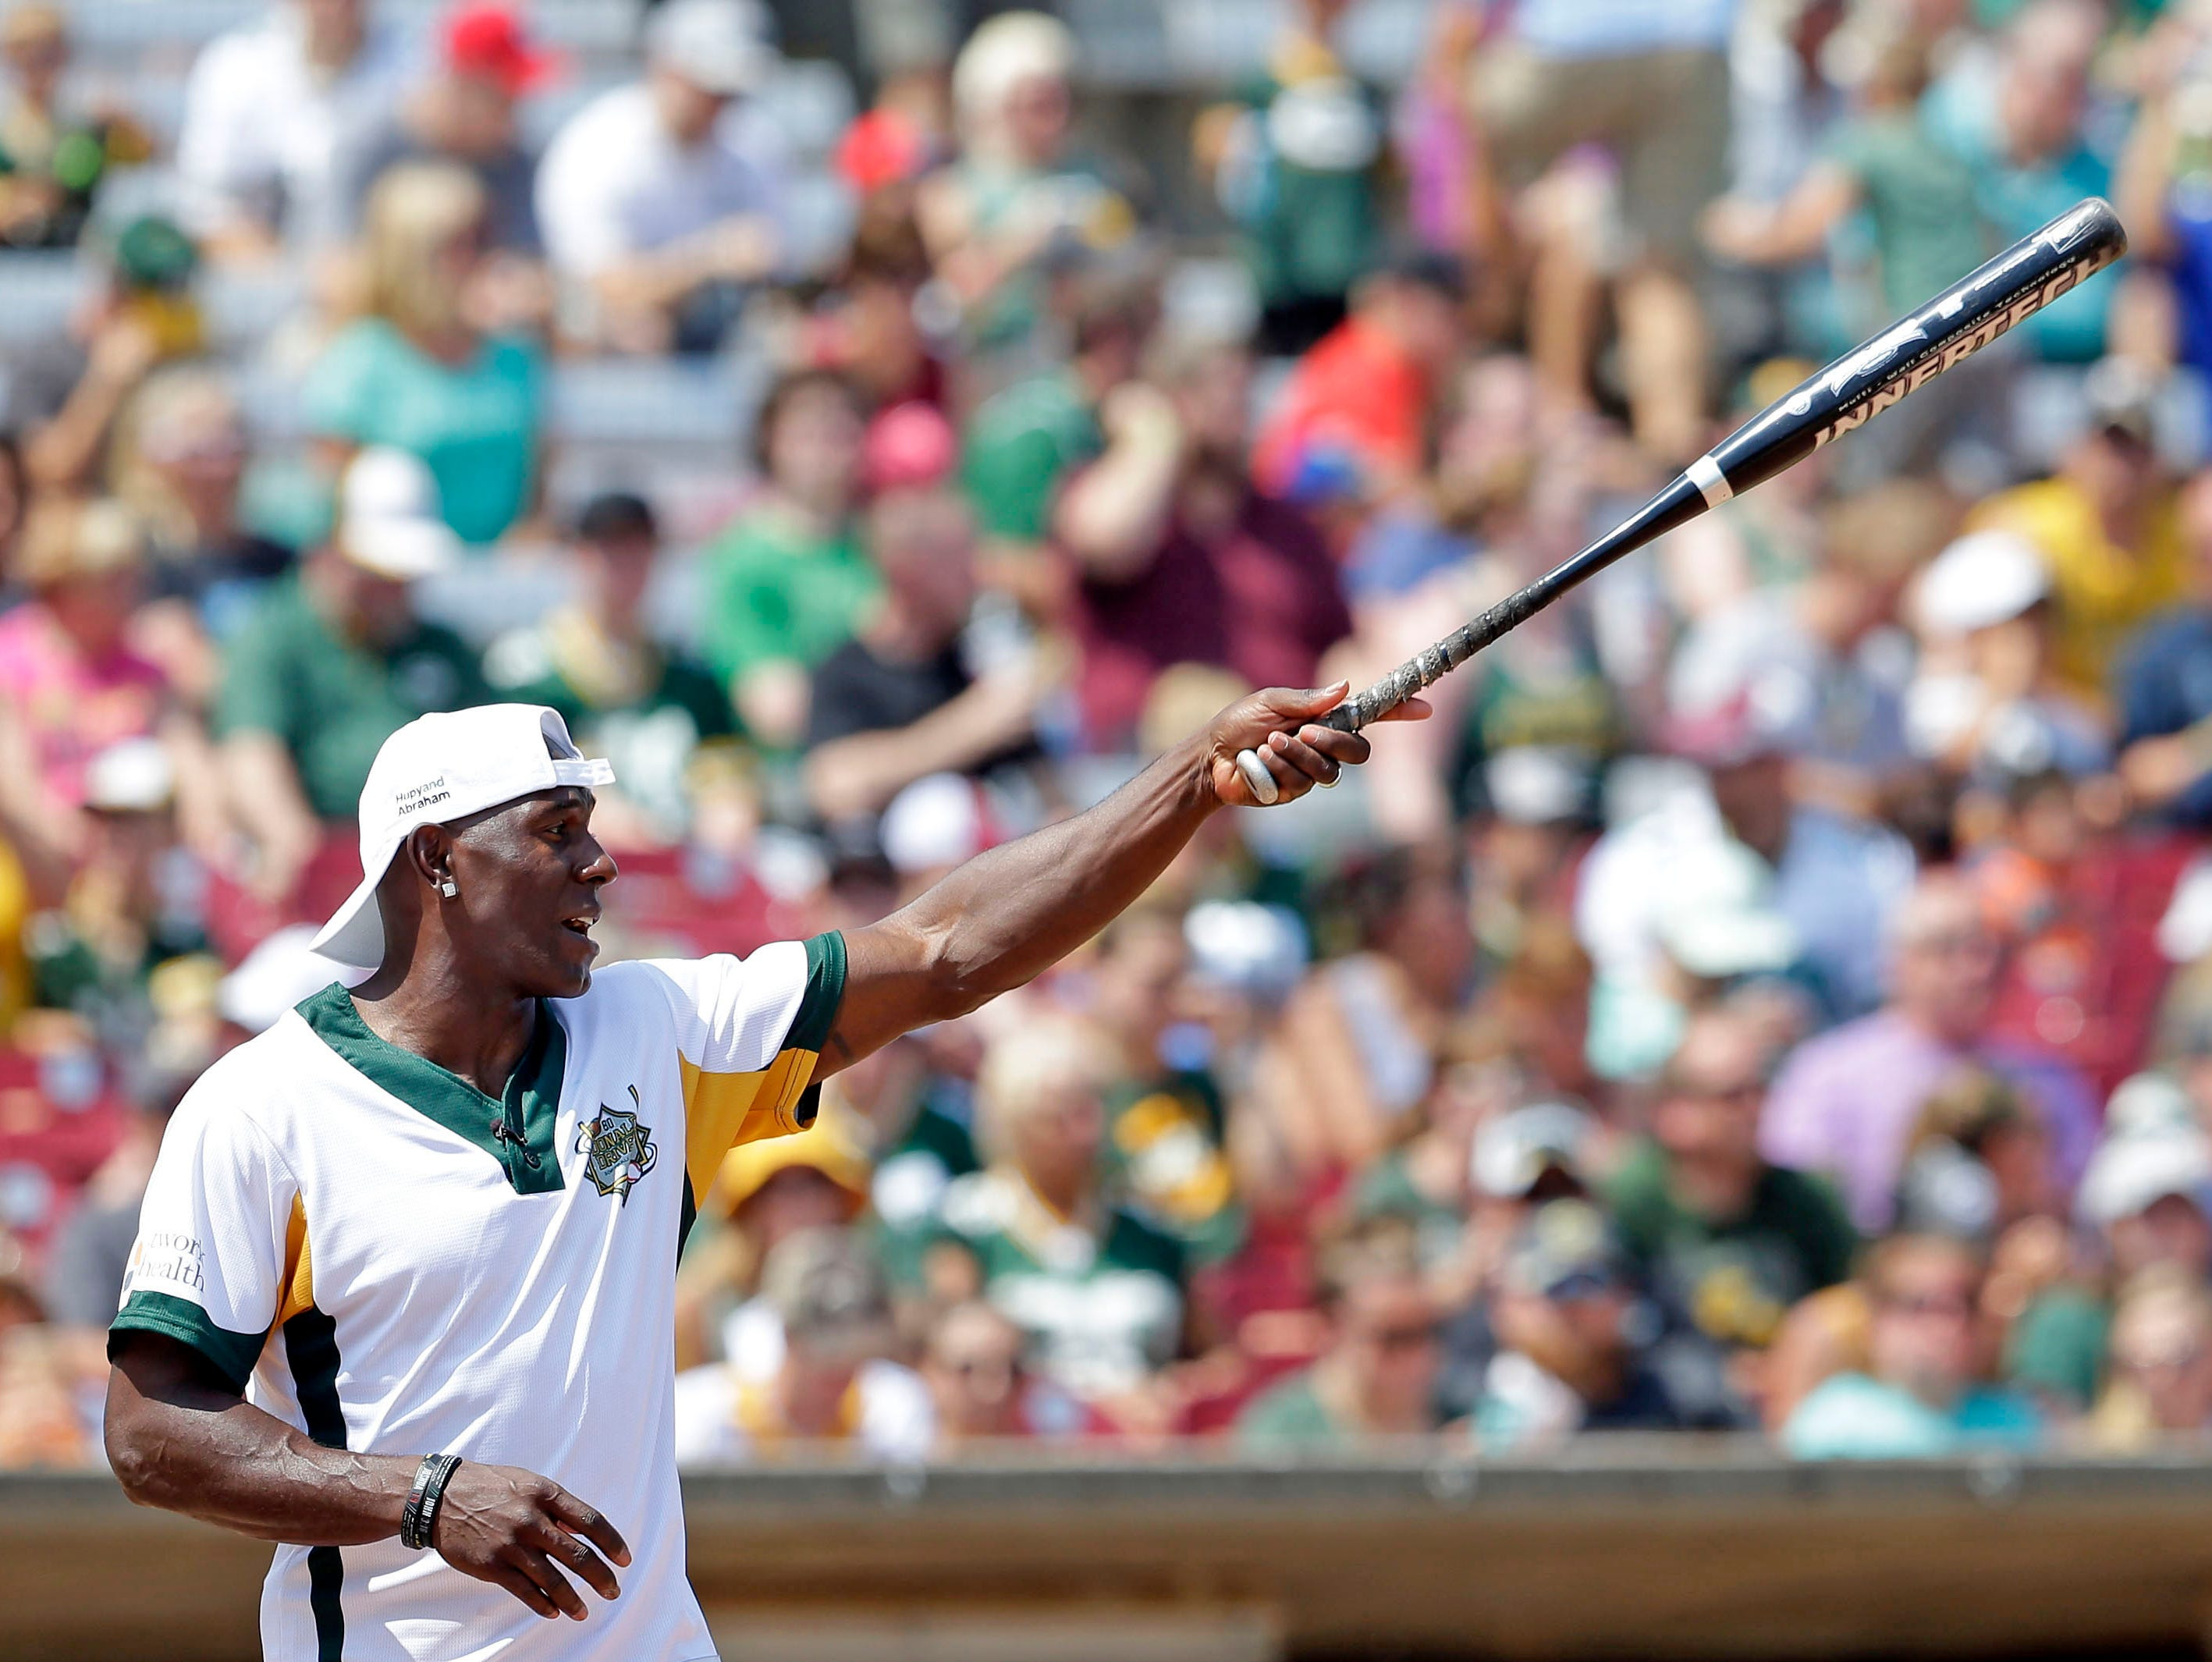 Donald Driver and a few of his friends gather for a charity softball game Sunday, August 5, 2018, at Neuroscience Group Field at Fox Cities Stadium in Grand Chute, Wis.